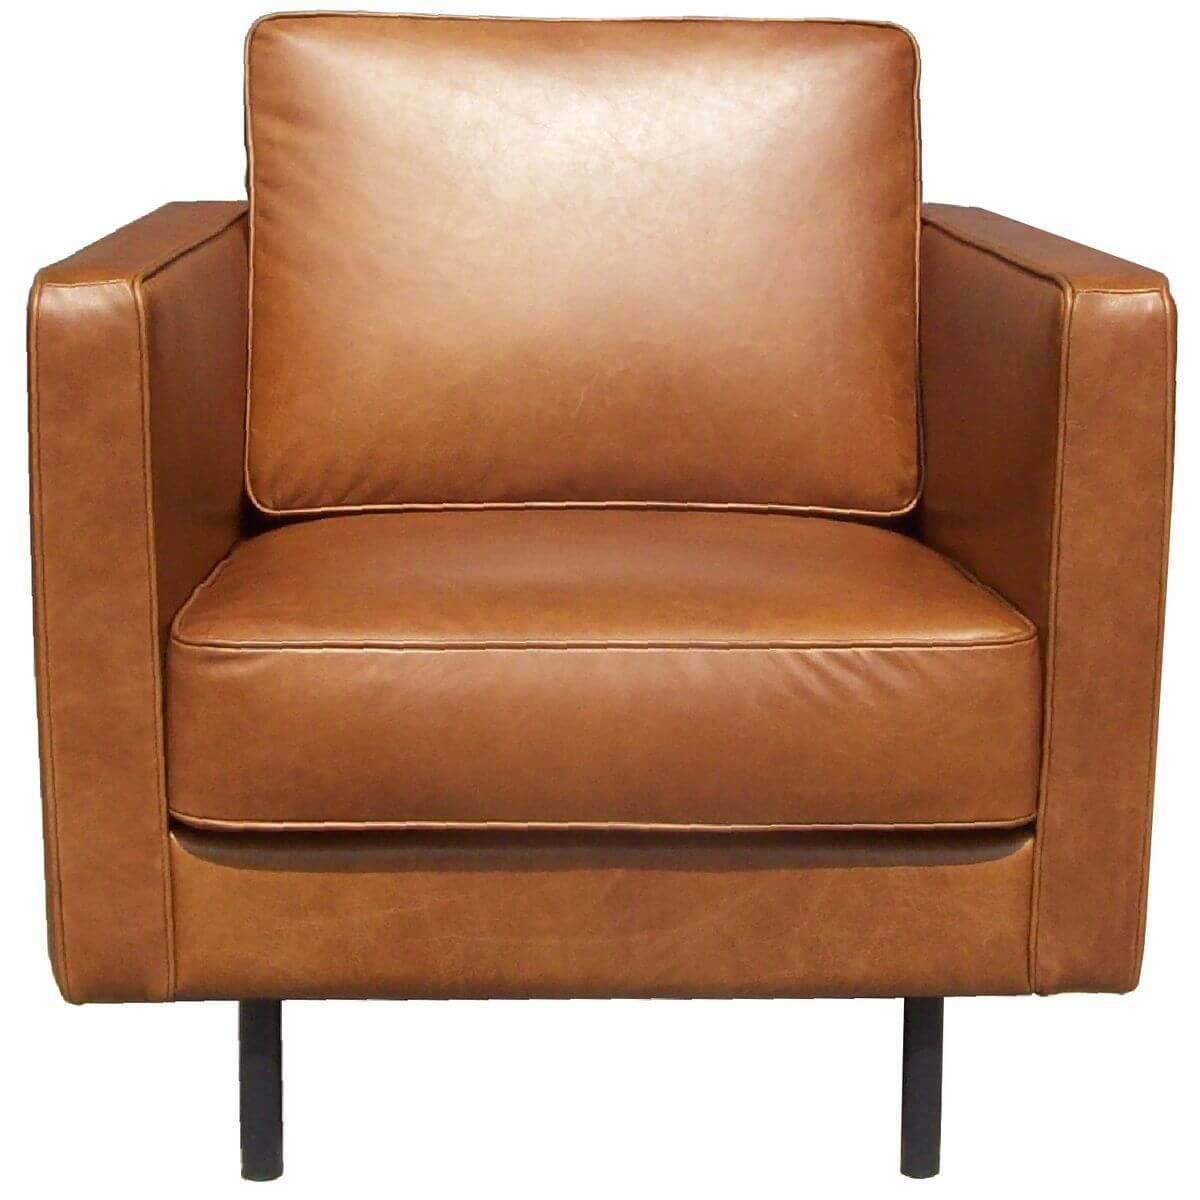 Fauteuil N501 Ethnicraft brun